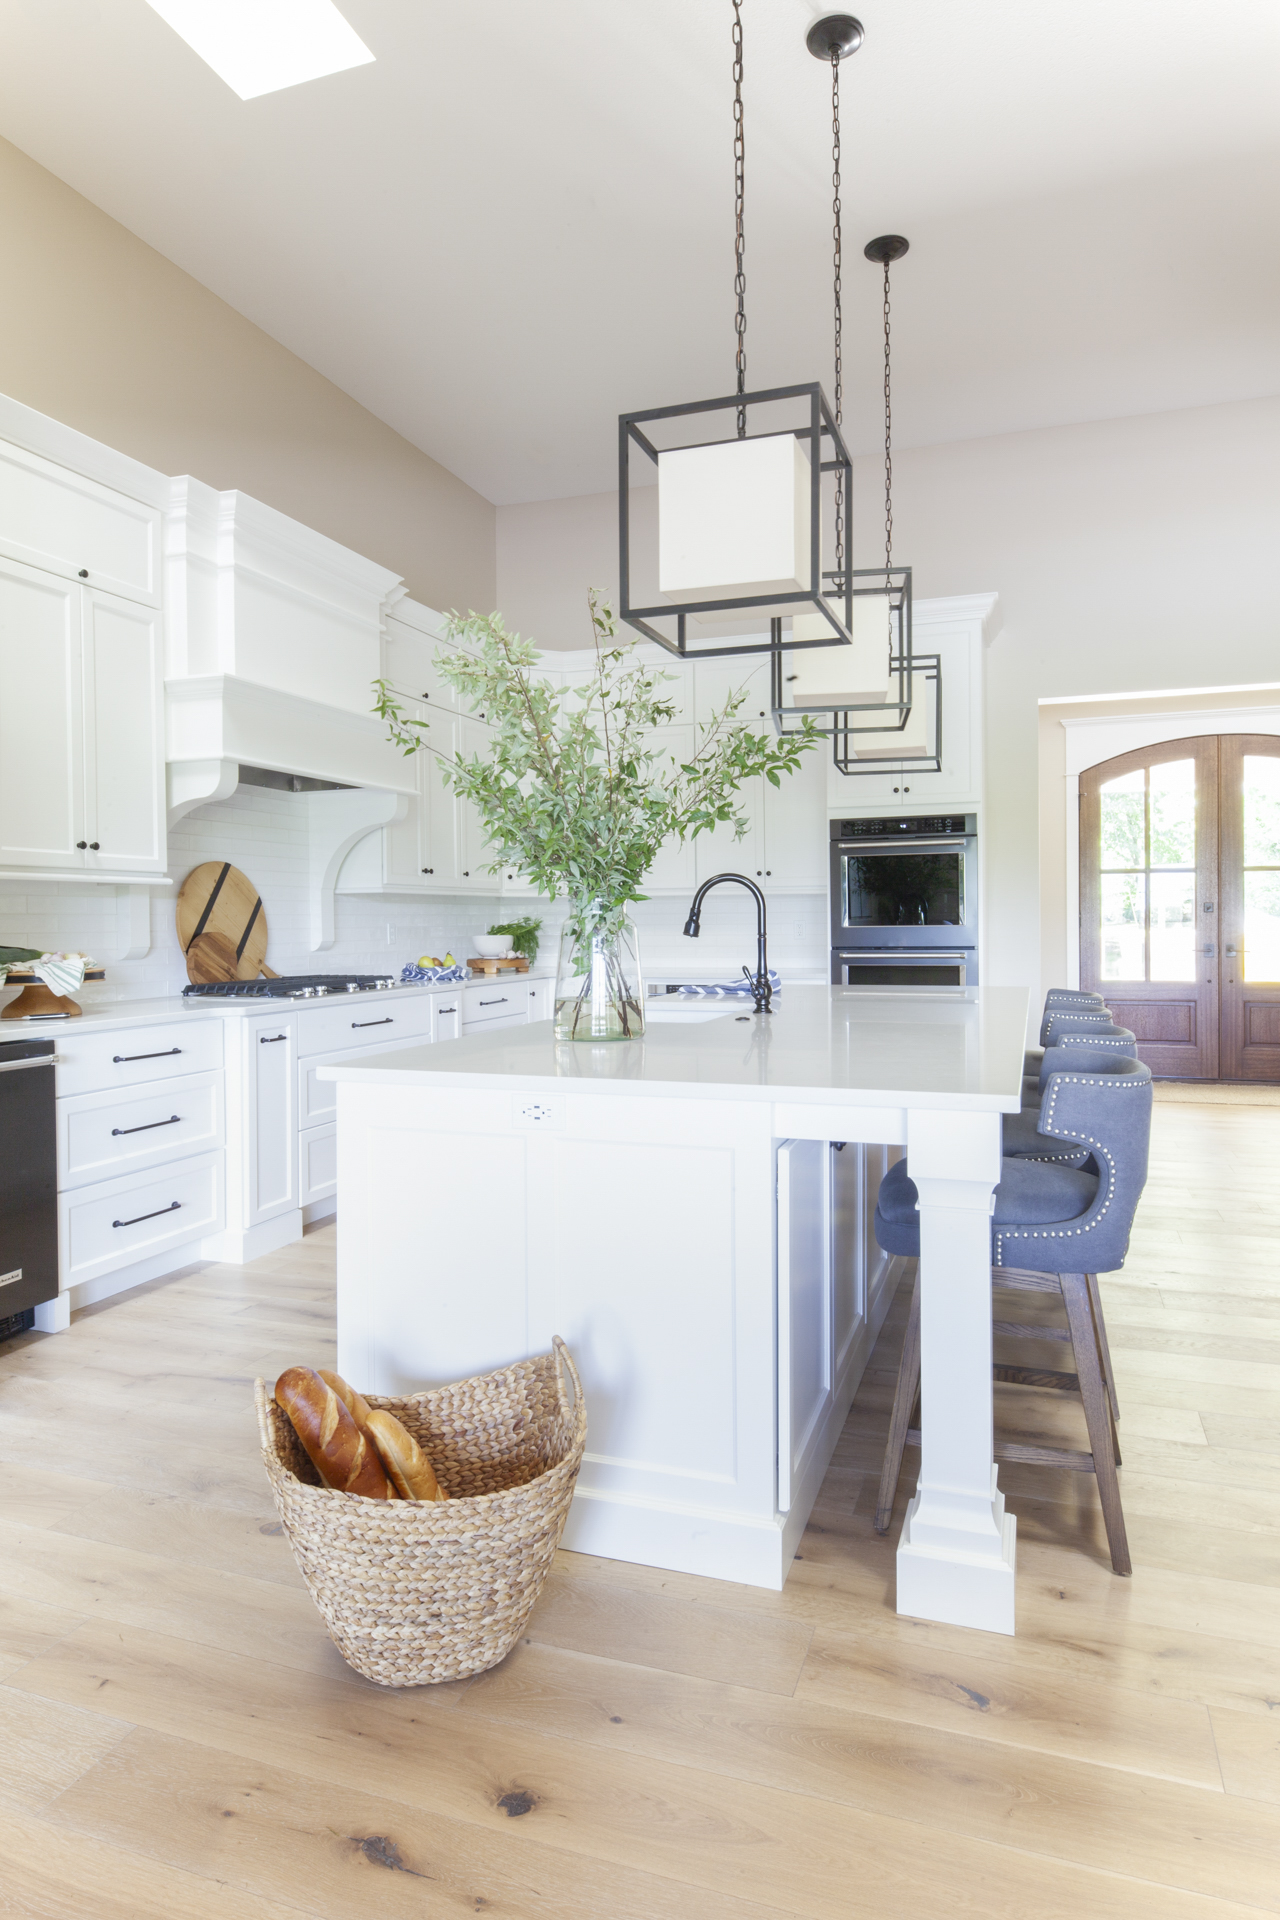 before-and-after-home-reveal-scout-and-nimble-lake-view-luxe-country-interior-design-kitchen-luxury-light-modern-subway-tile-pendant-lighting-kitchen-white-cabinets-40.jpg